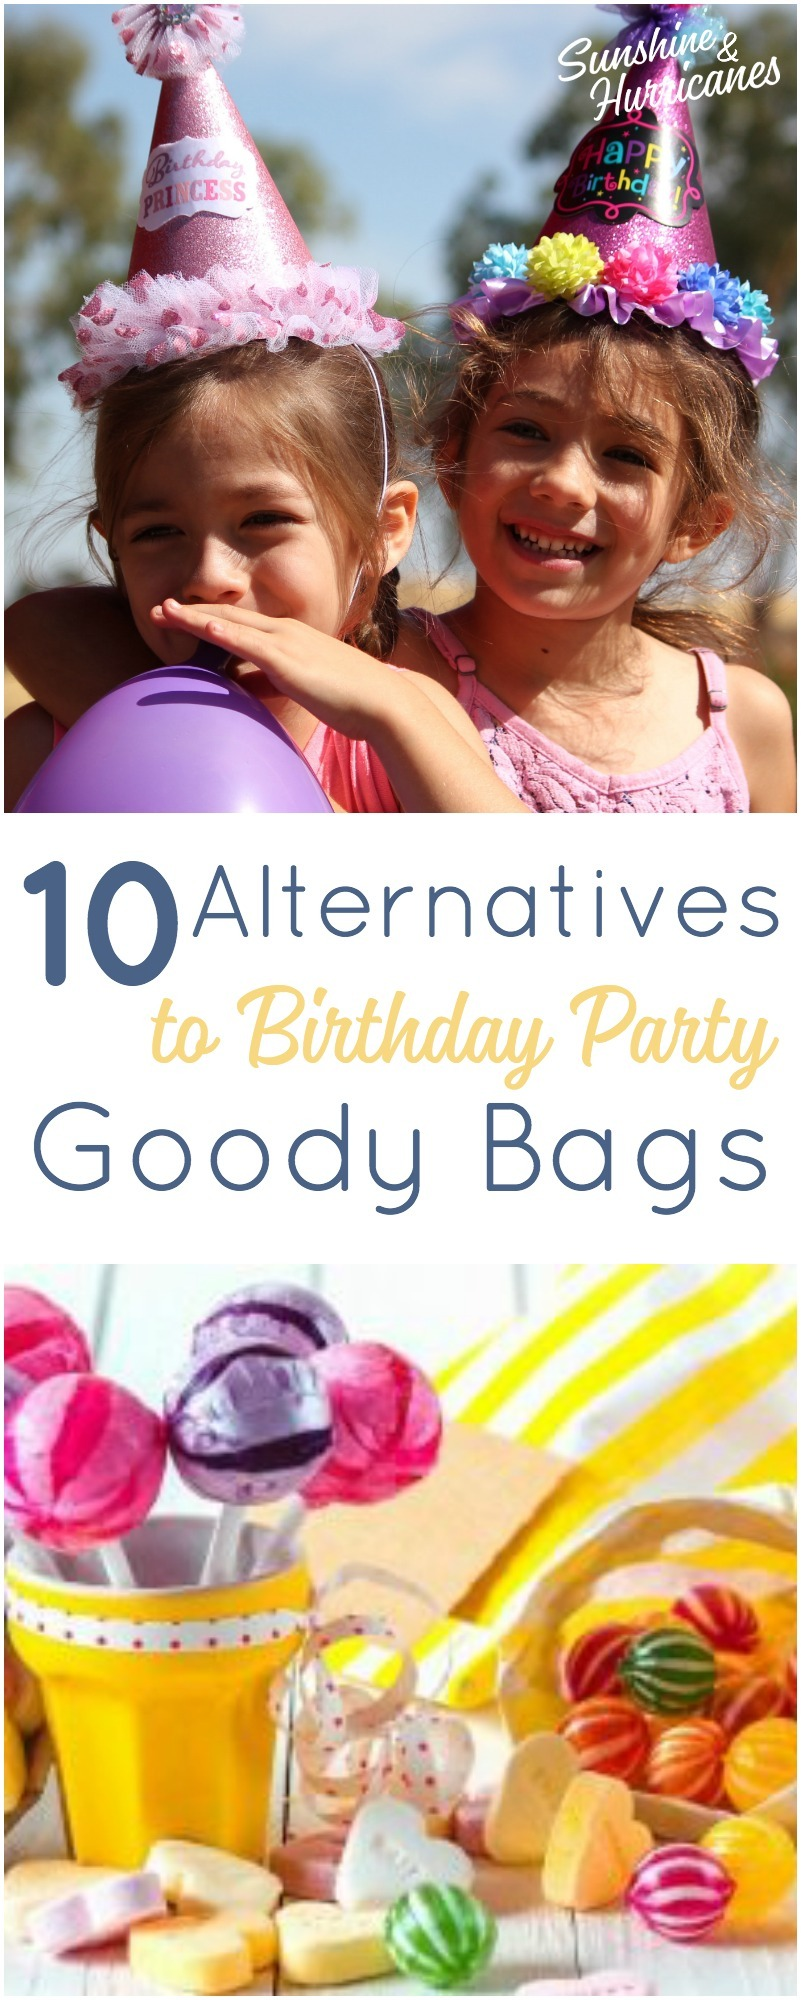 10 Alternatives To Birthday Party Goody Bags Favors That Arent Junk